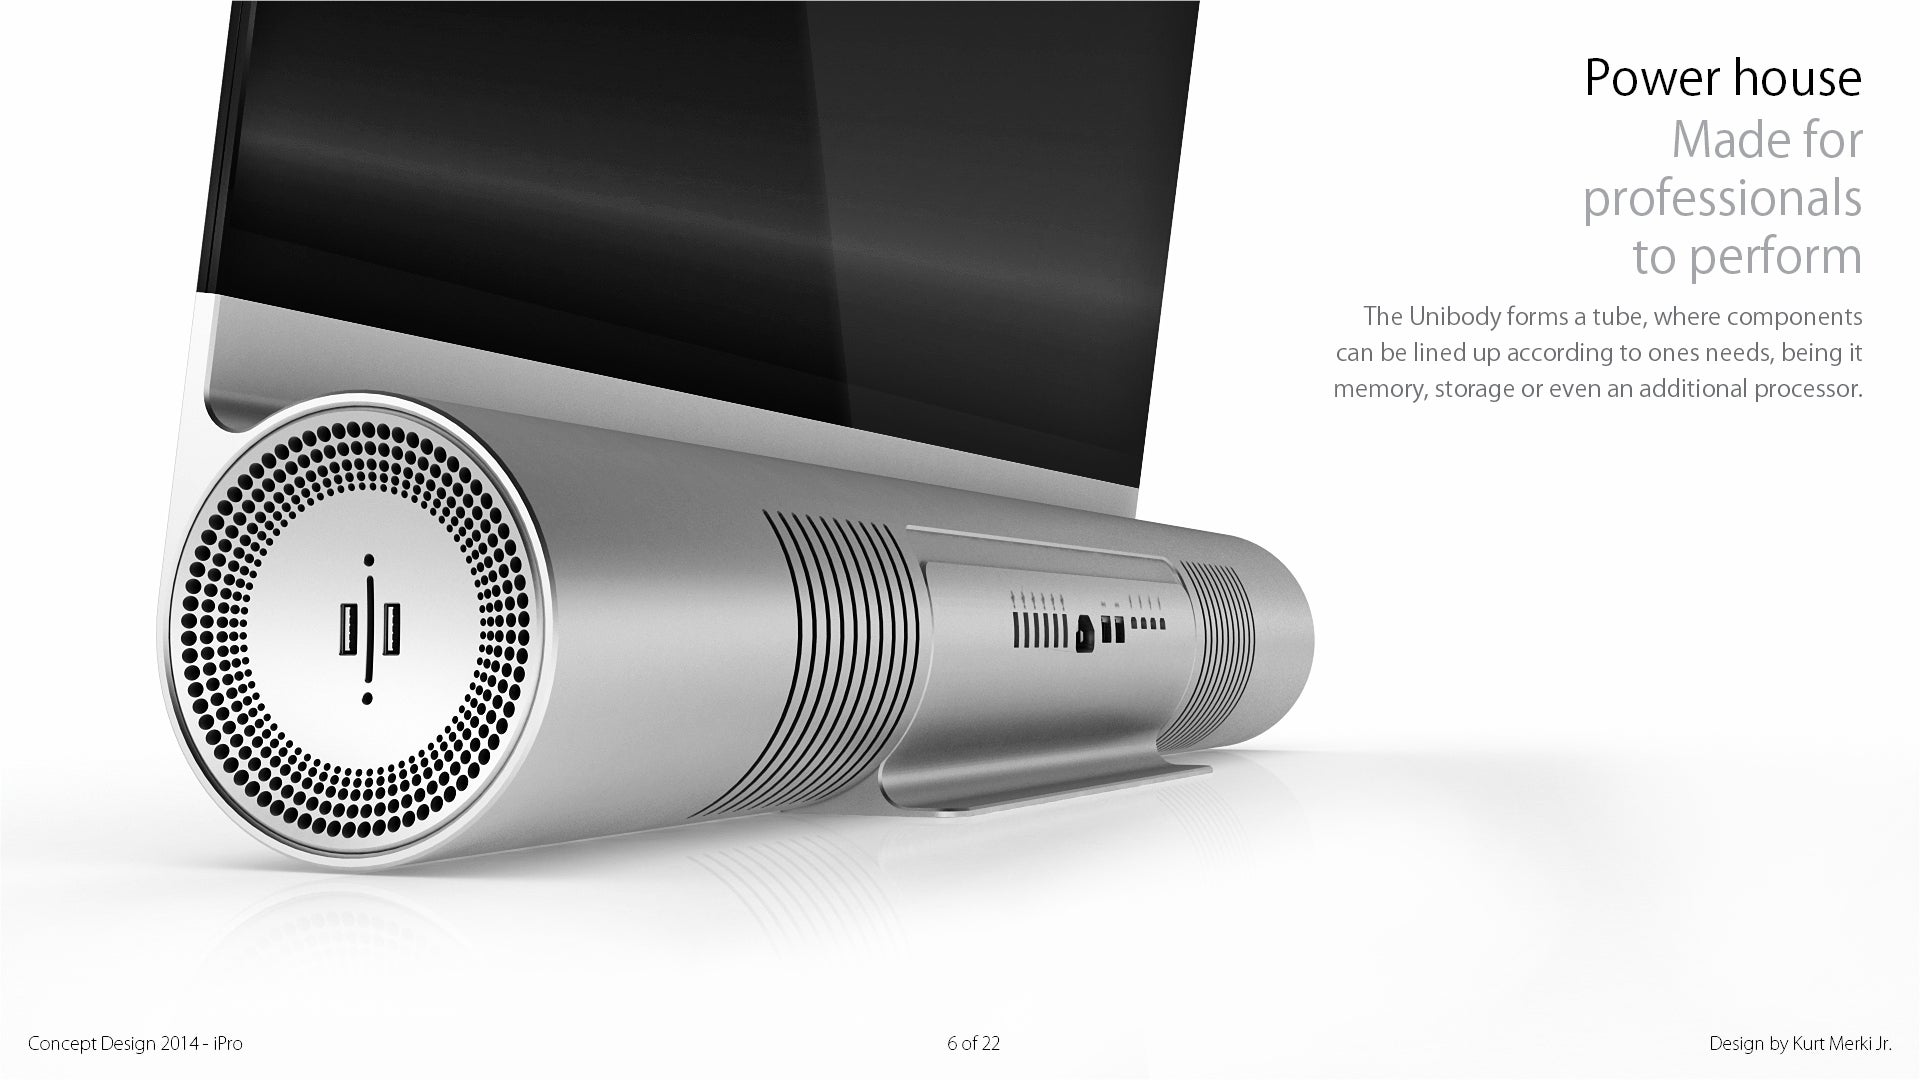 The iPro is a crazy/neat mix between a Mac Pro and an iMac